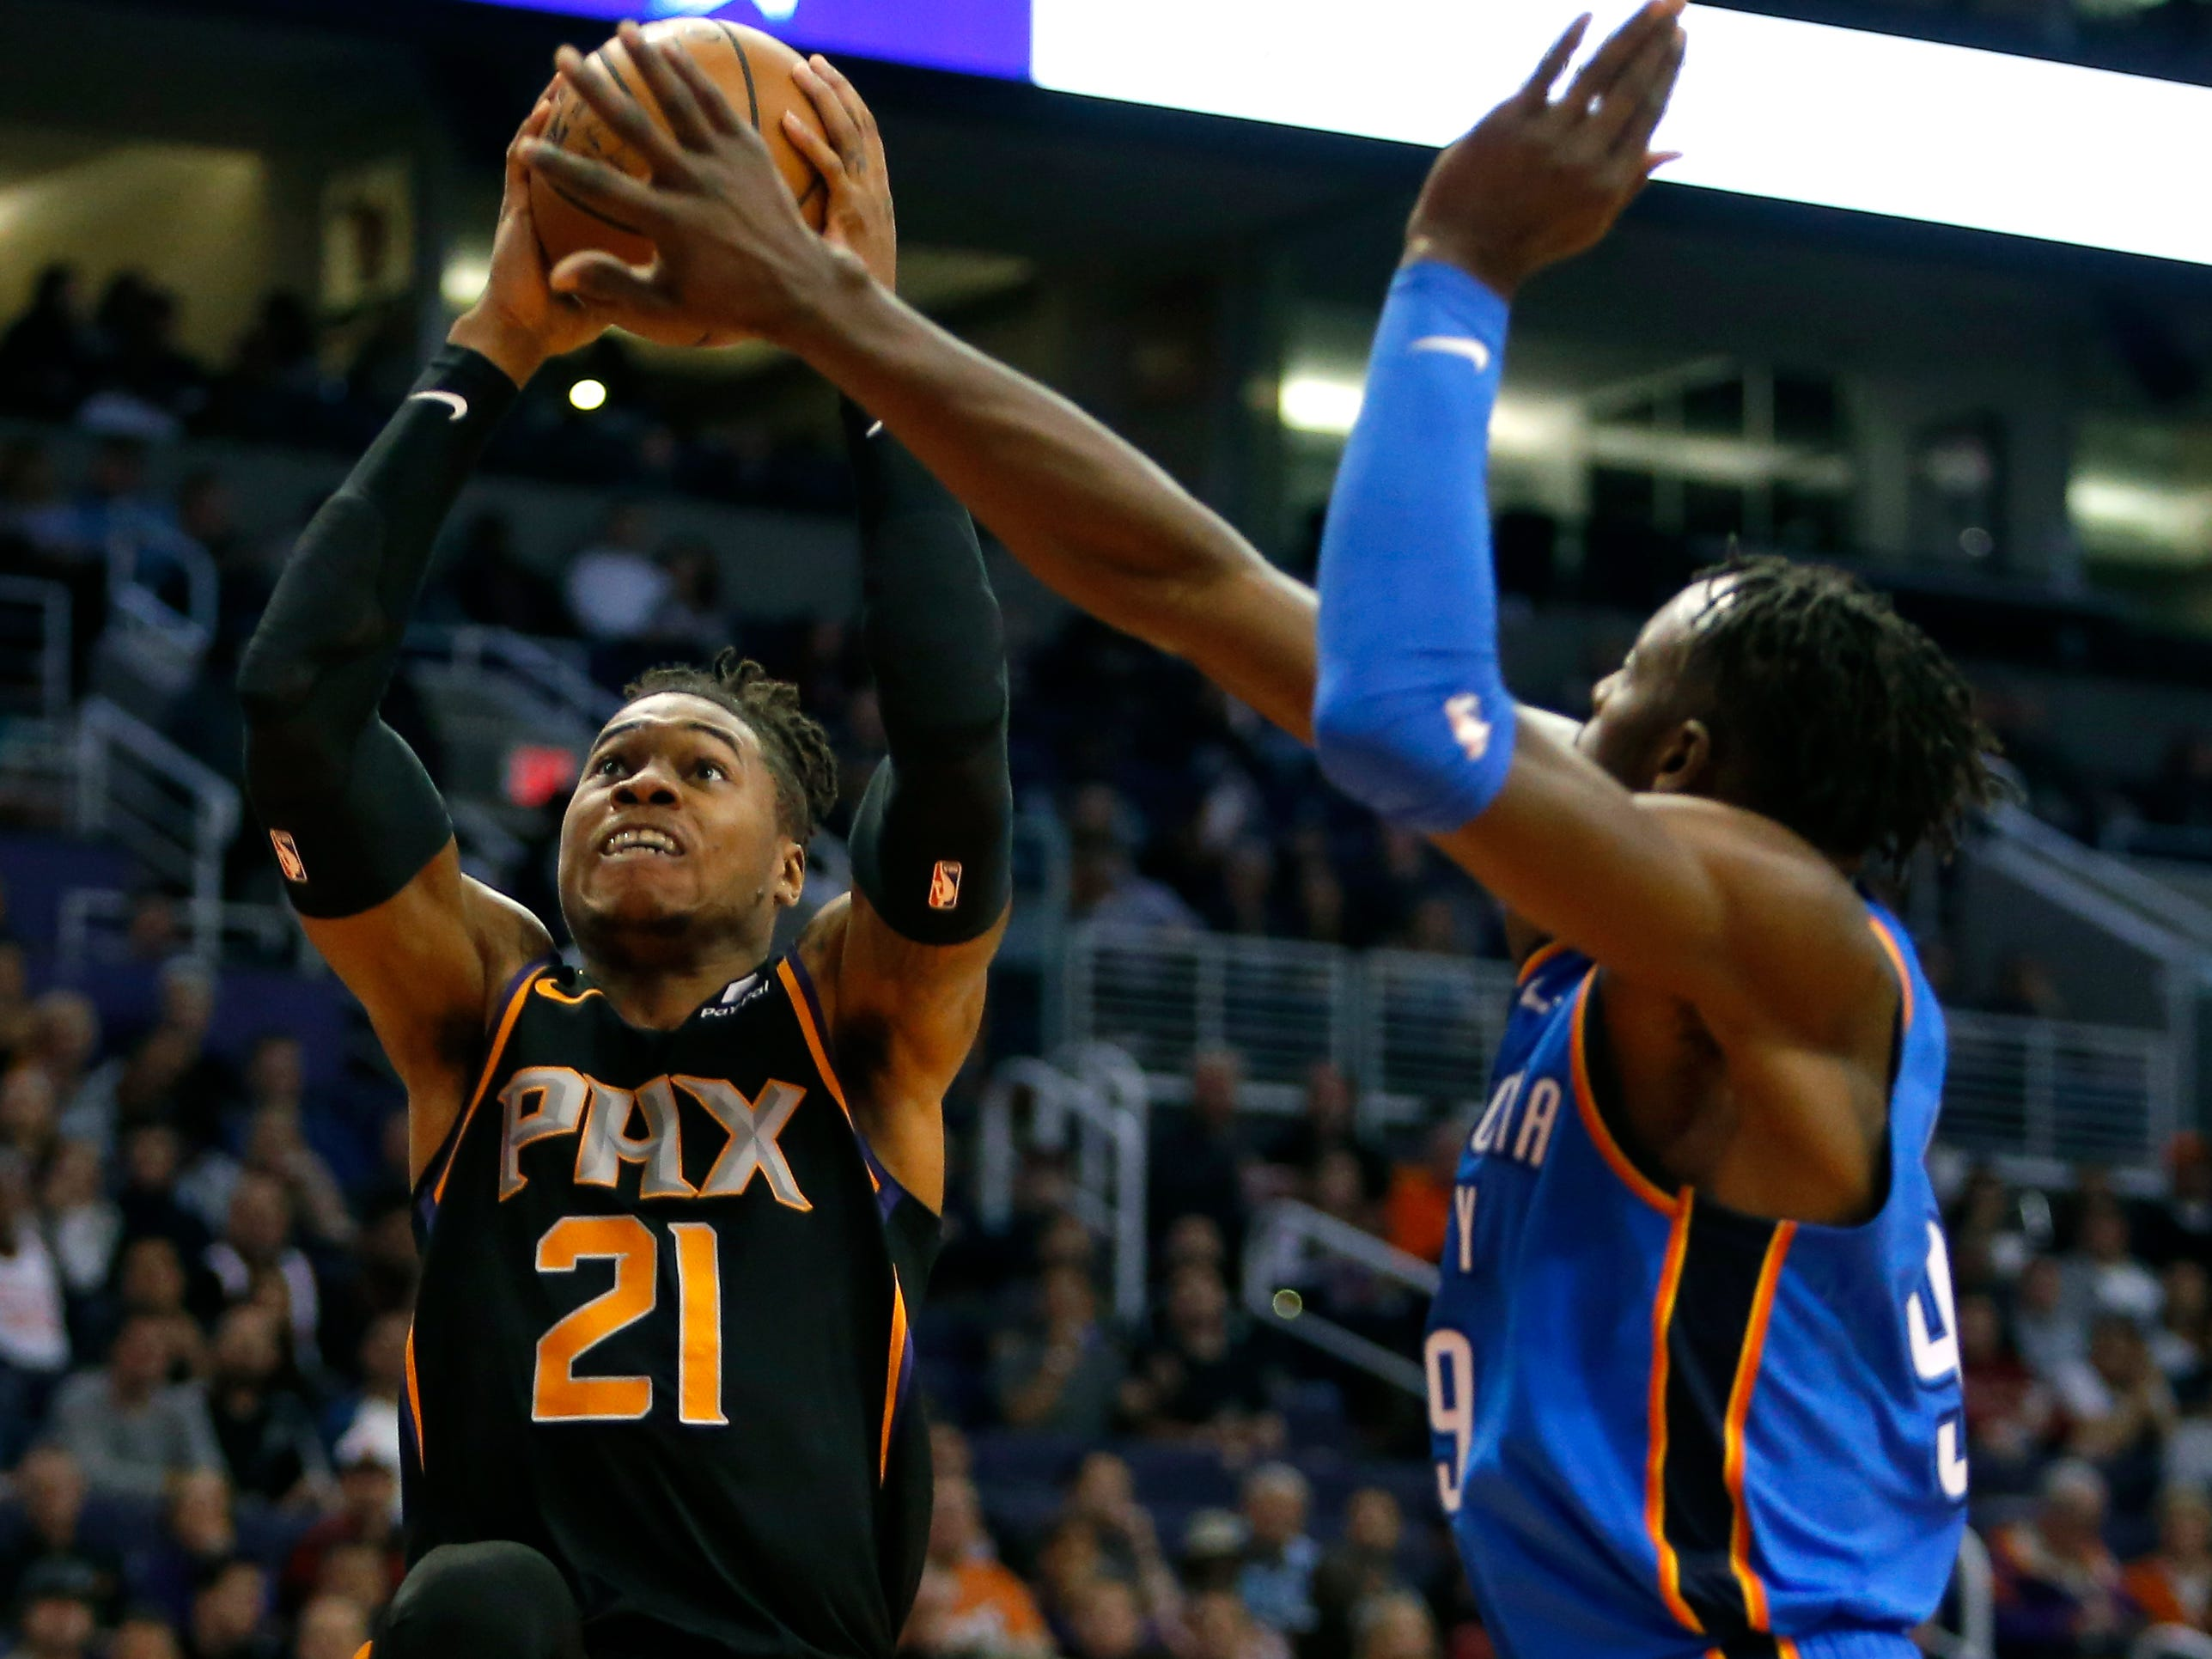 Phoenix Suns forward Richaun Holmes (21) in the first half during an NBA basketball game against the Oklahoma City Thunder, Saturday, Nov. 17, 2018, in Phoenix. (AP Photo/Rick Scuteri)